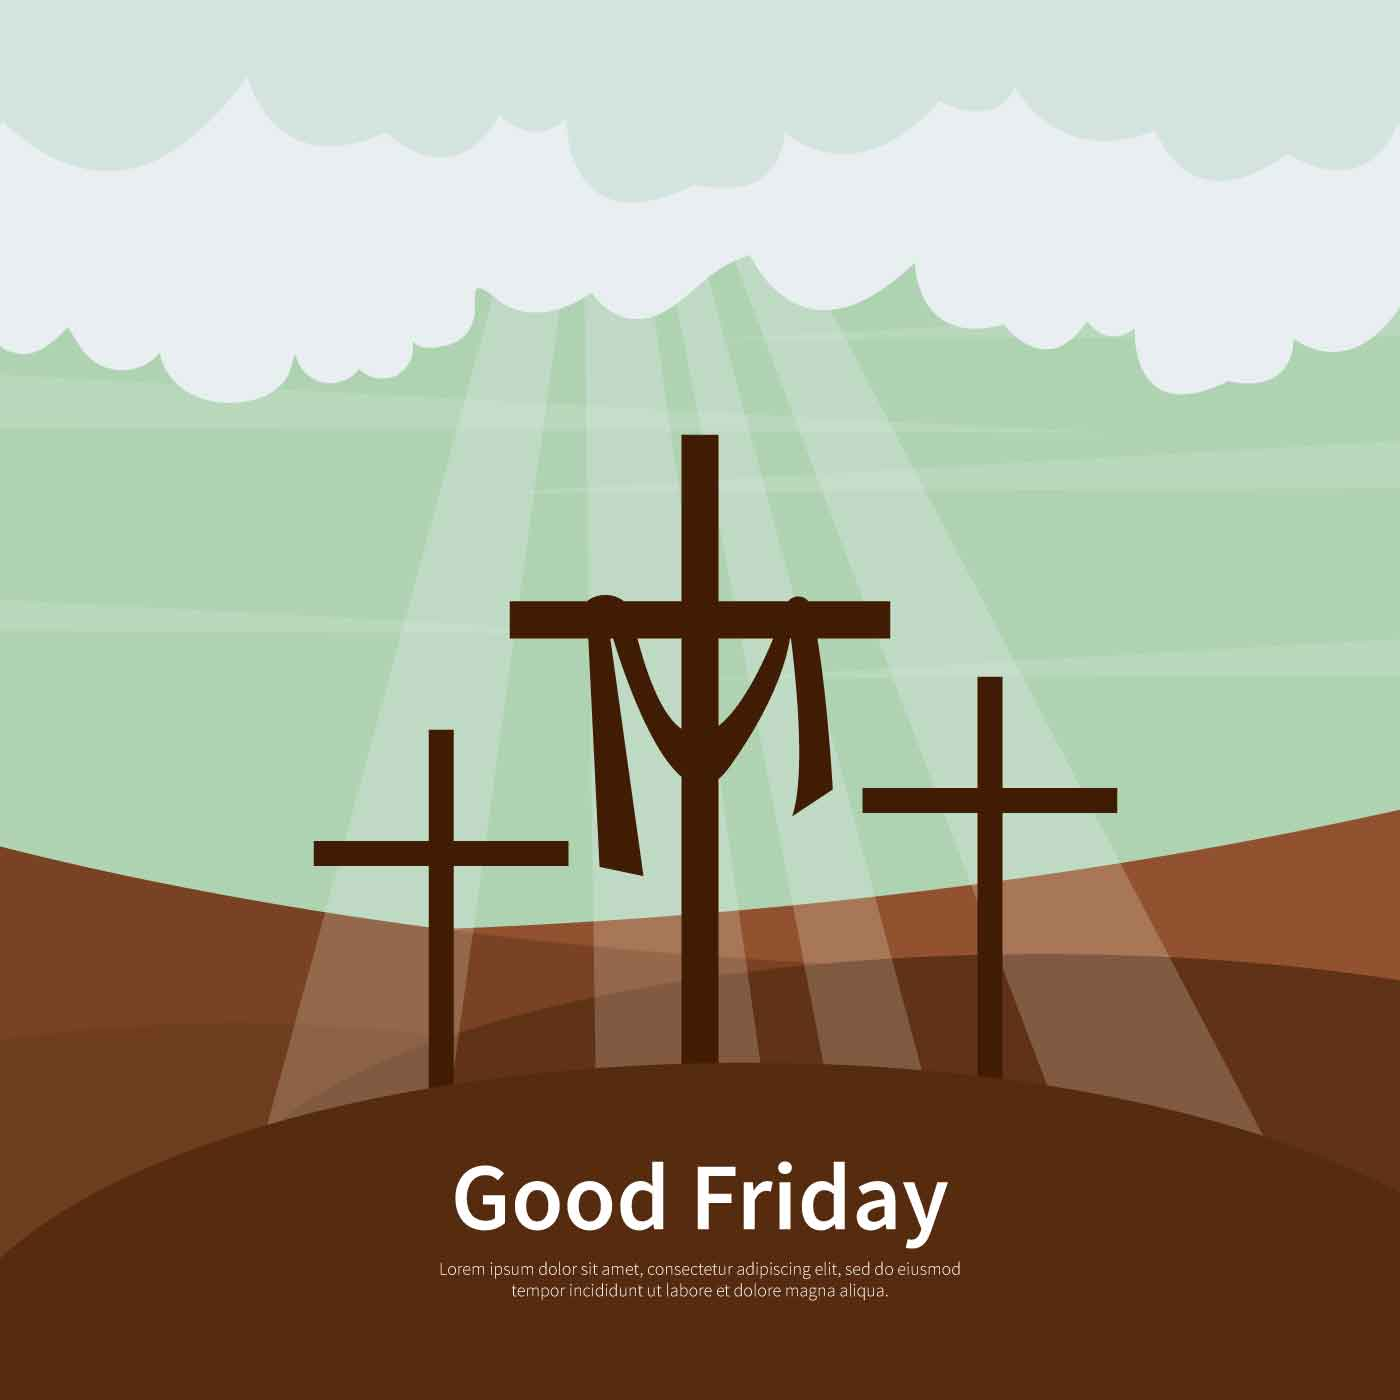 Good Friday Background Illustration - Download Free Vector ...